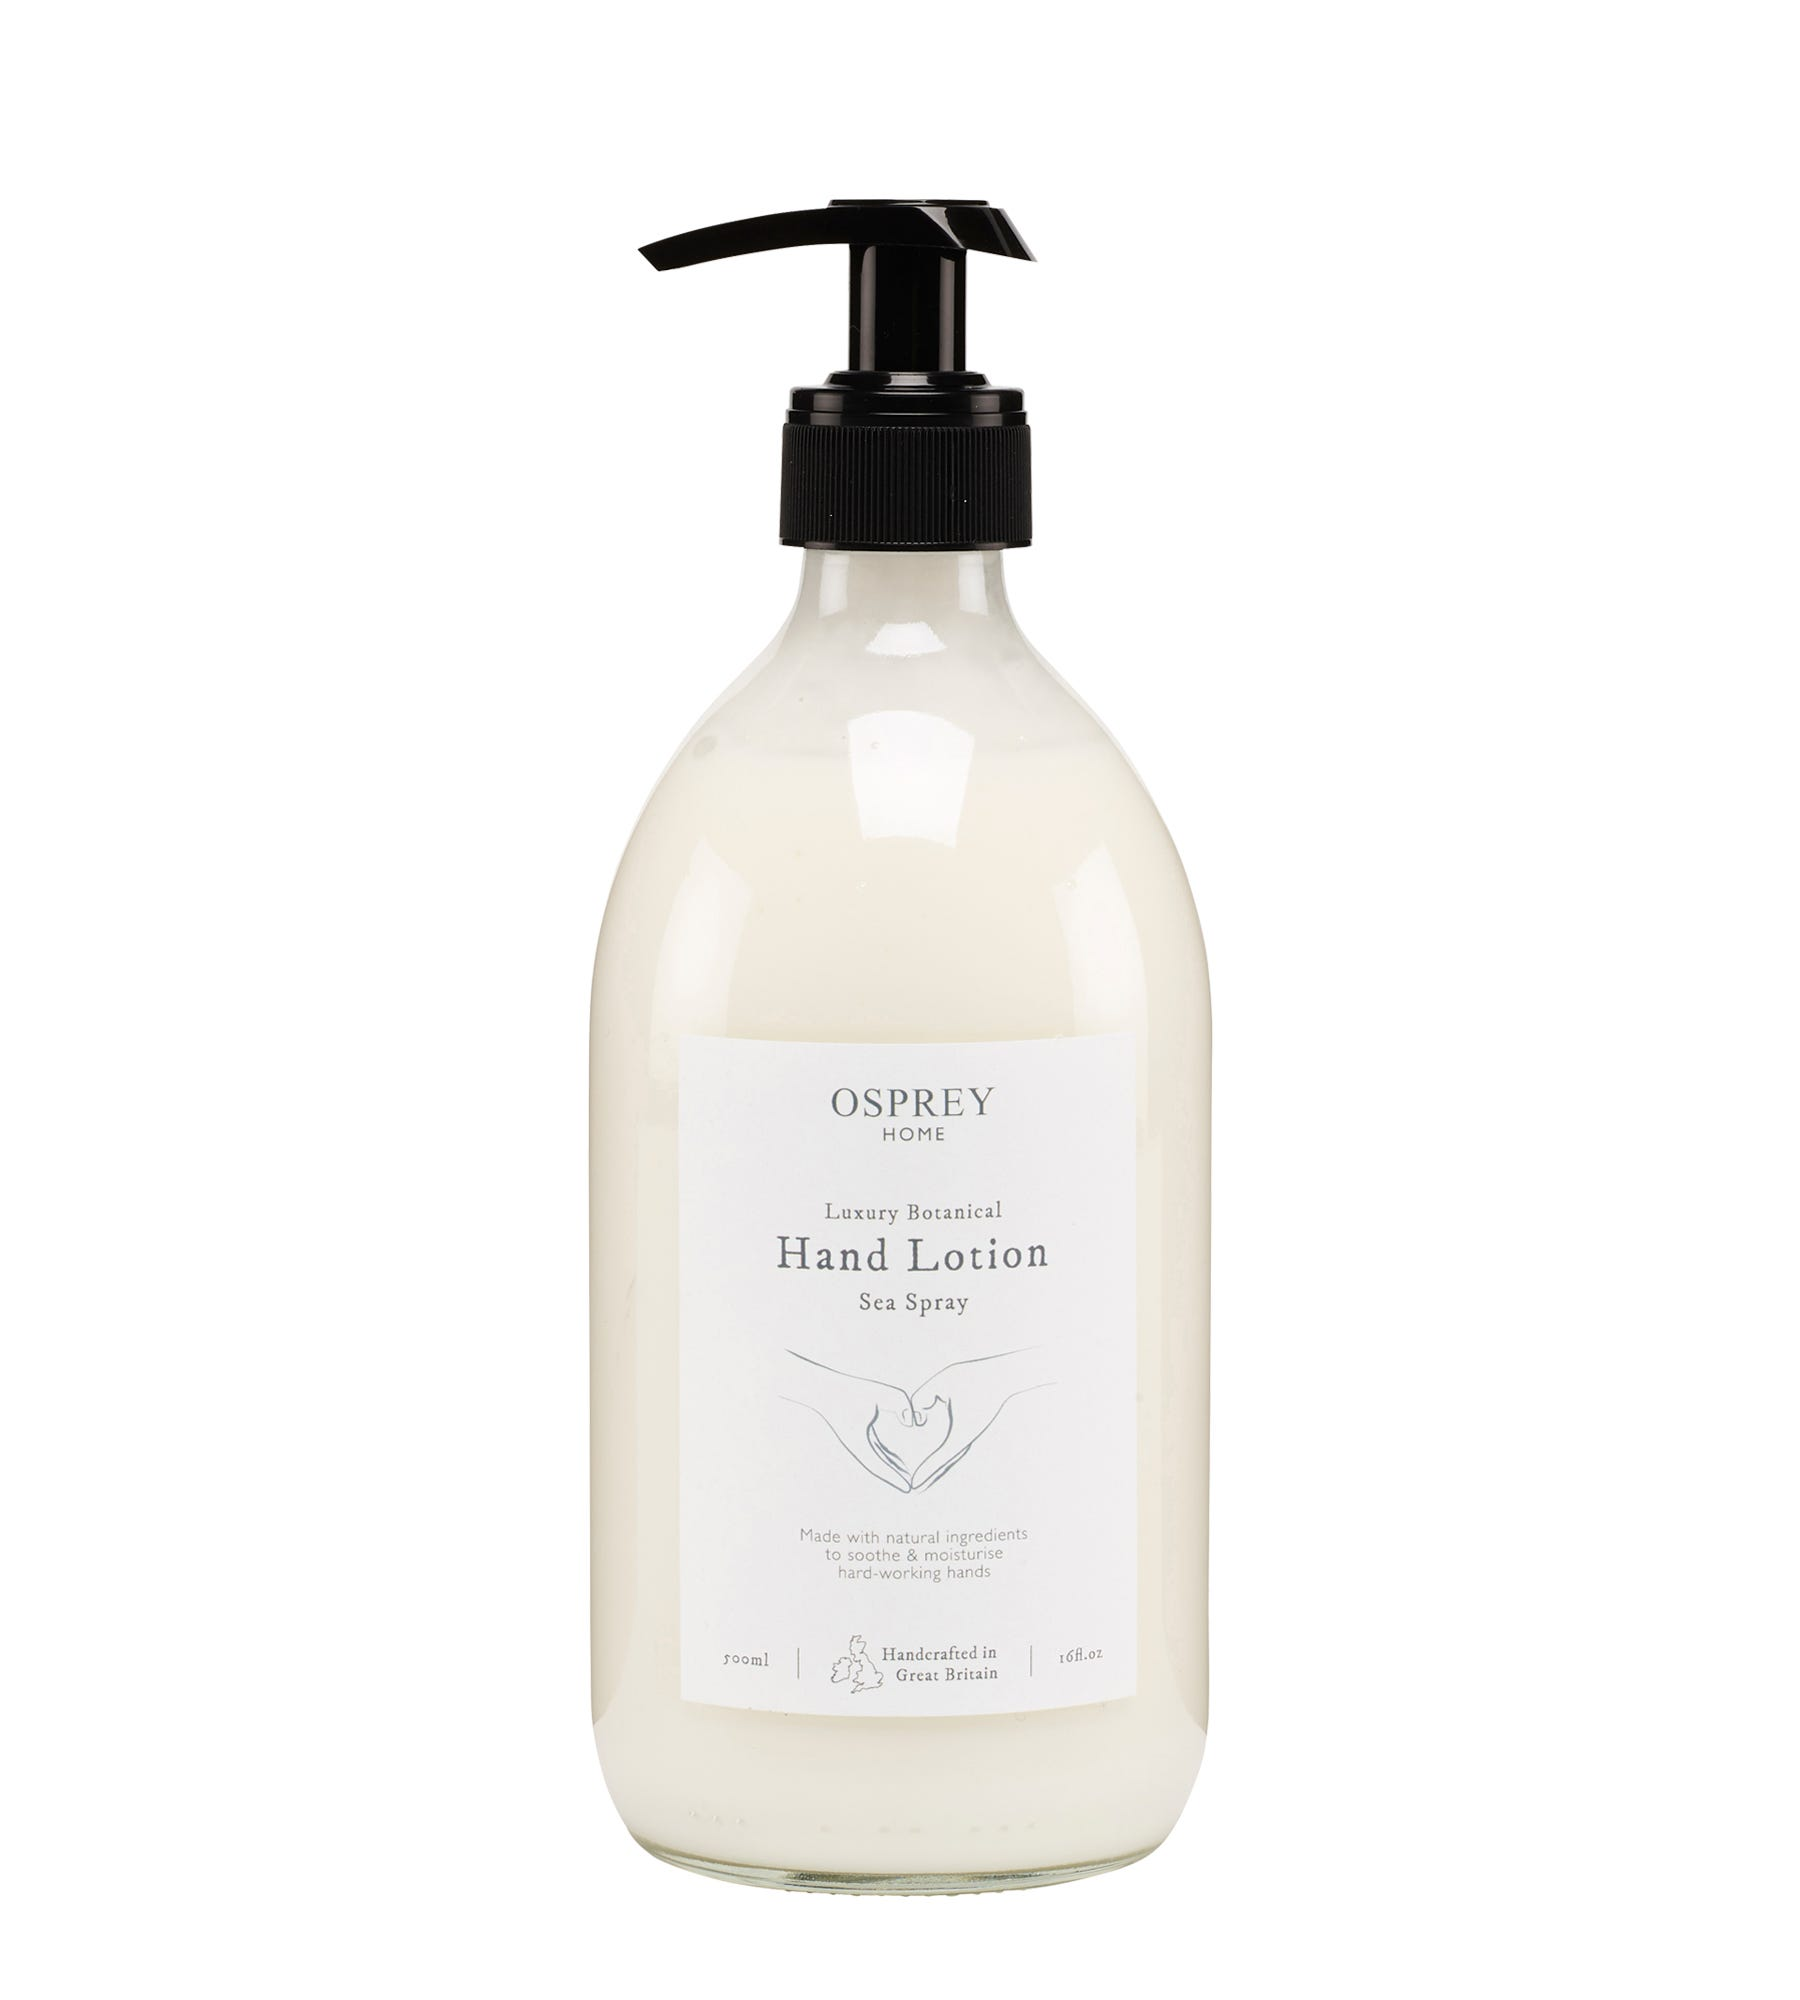 An image of Luxury Botanical Hand Lotion 500ml Glass